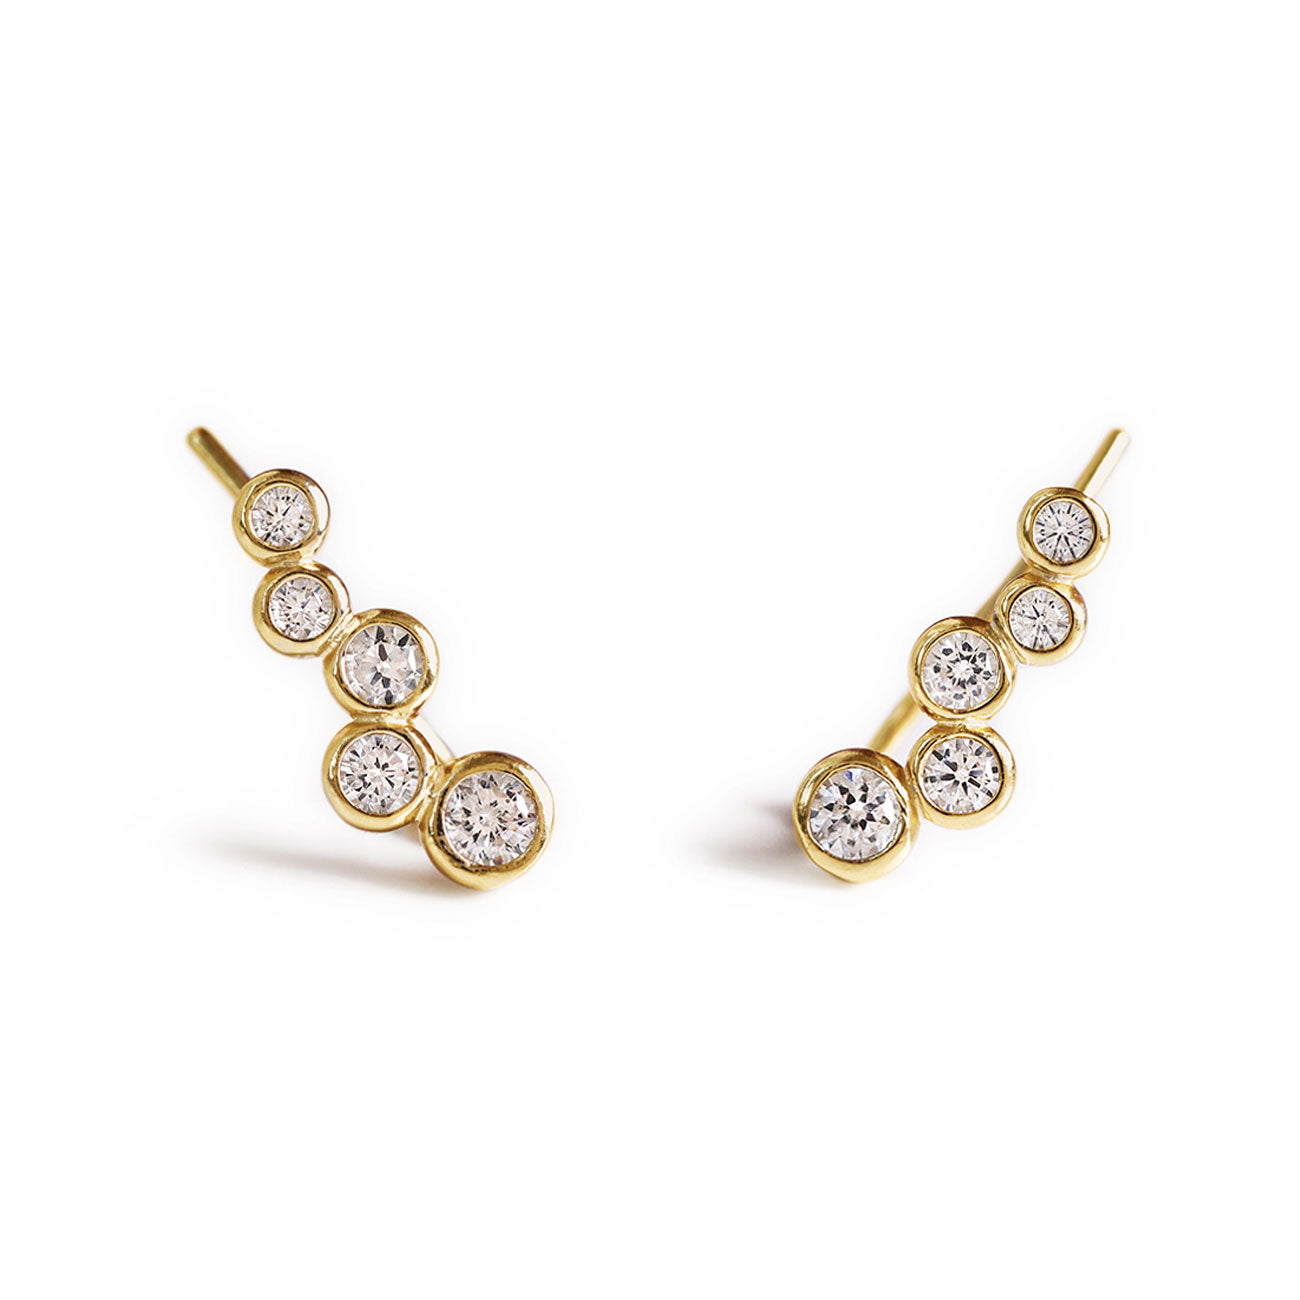 Gold Pave Cluster Ear Climber Earrings